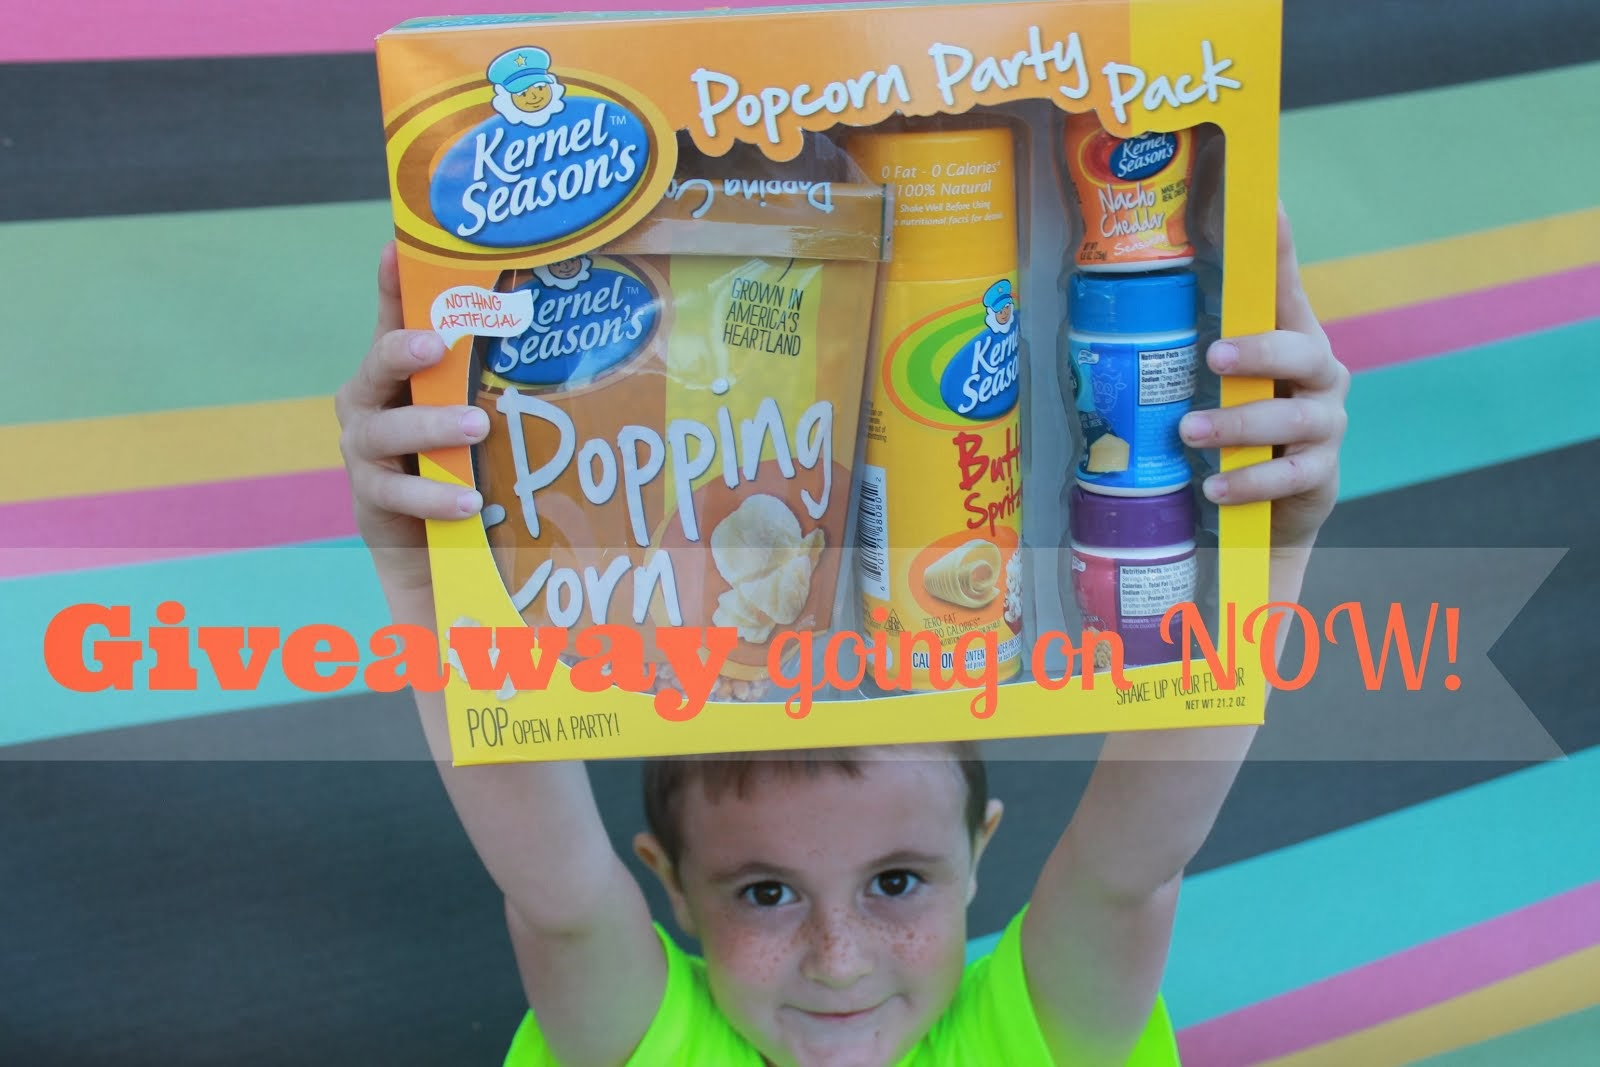 A chance to WIN Free Popcorn Party Pack!